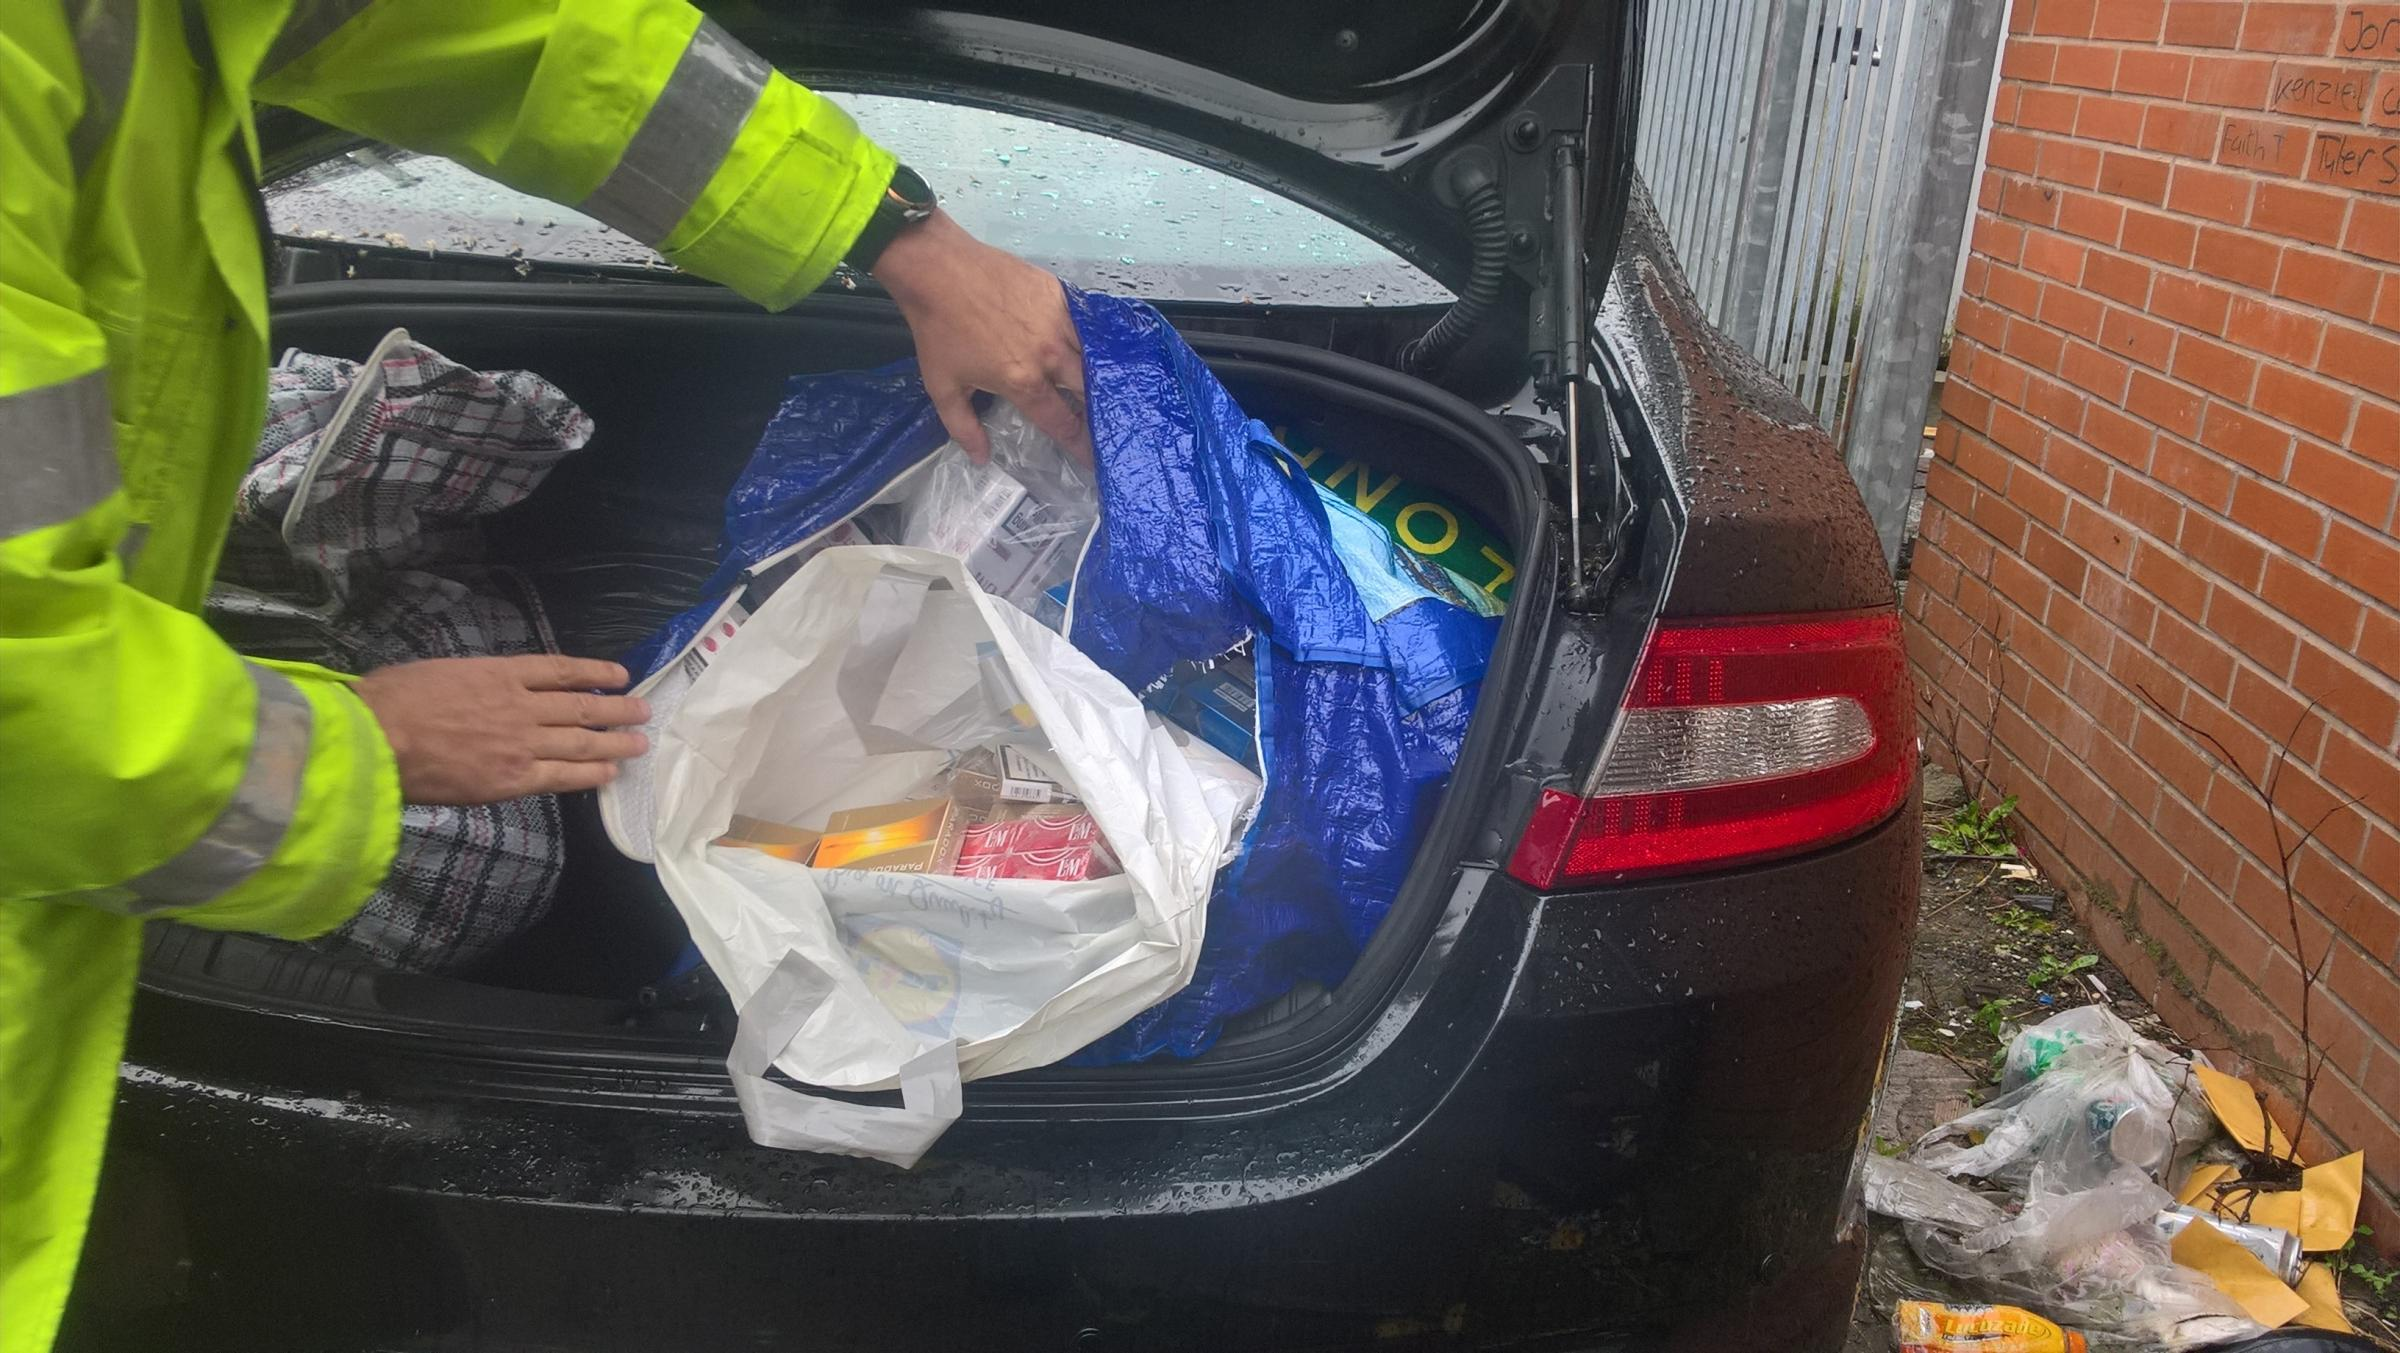 RAID: Illicit tobacco was discovered in the boot of a black Jaguar XS